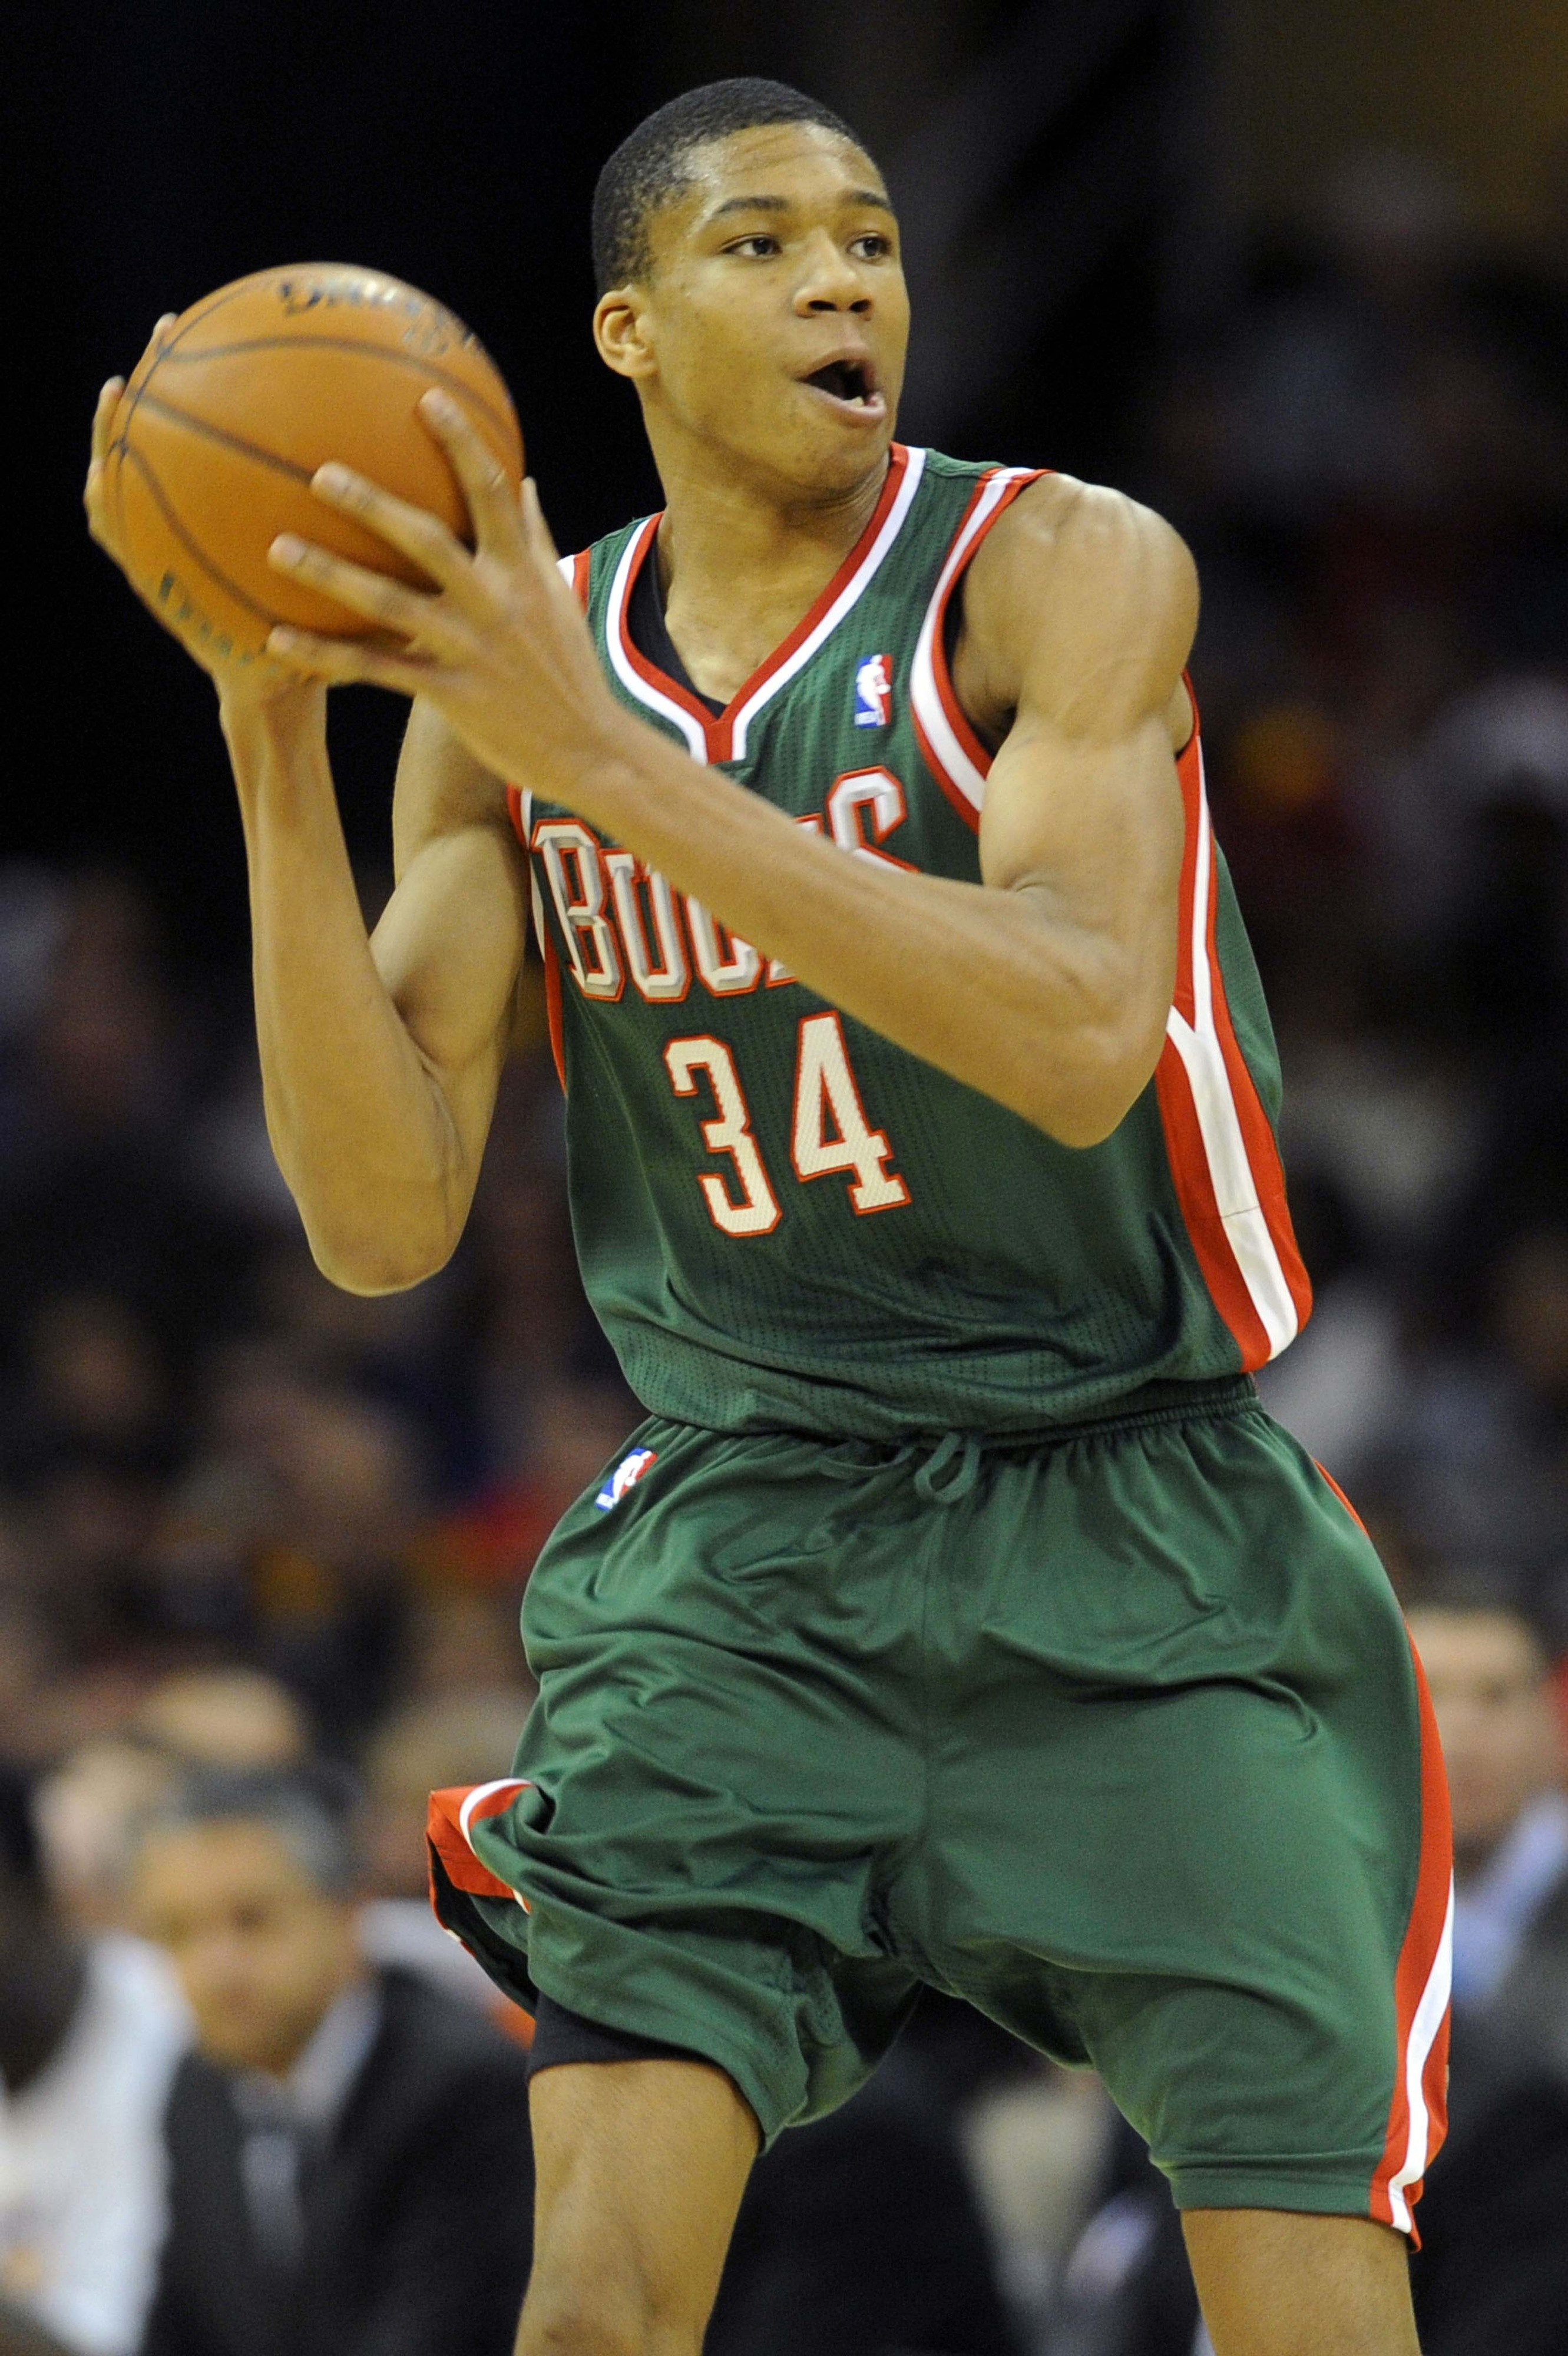 Giannis Antetokounmpo's hands are too huge for standard gloves